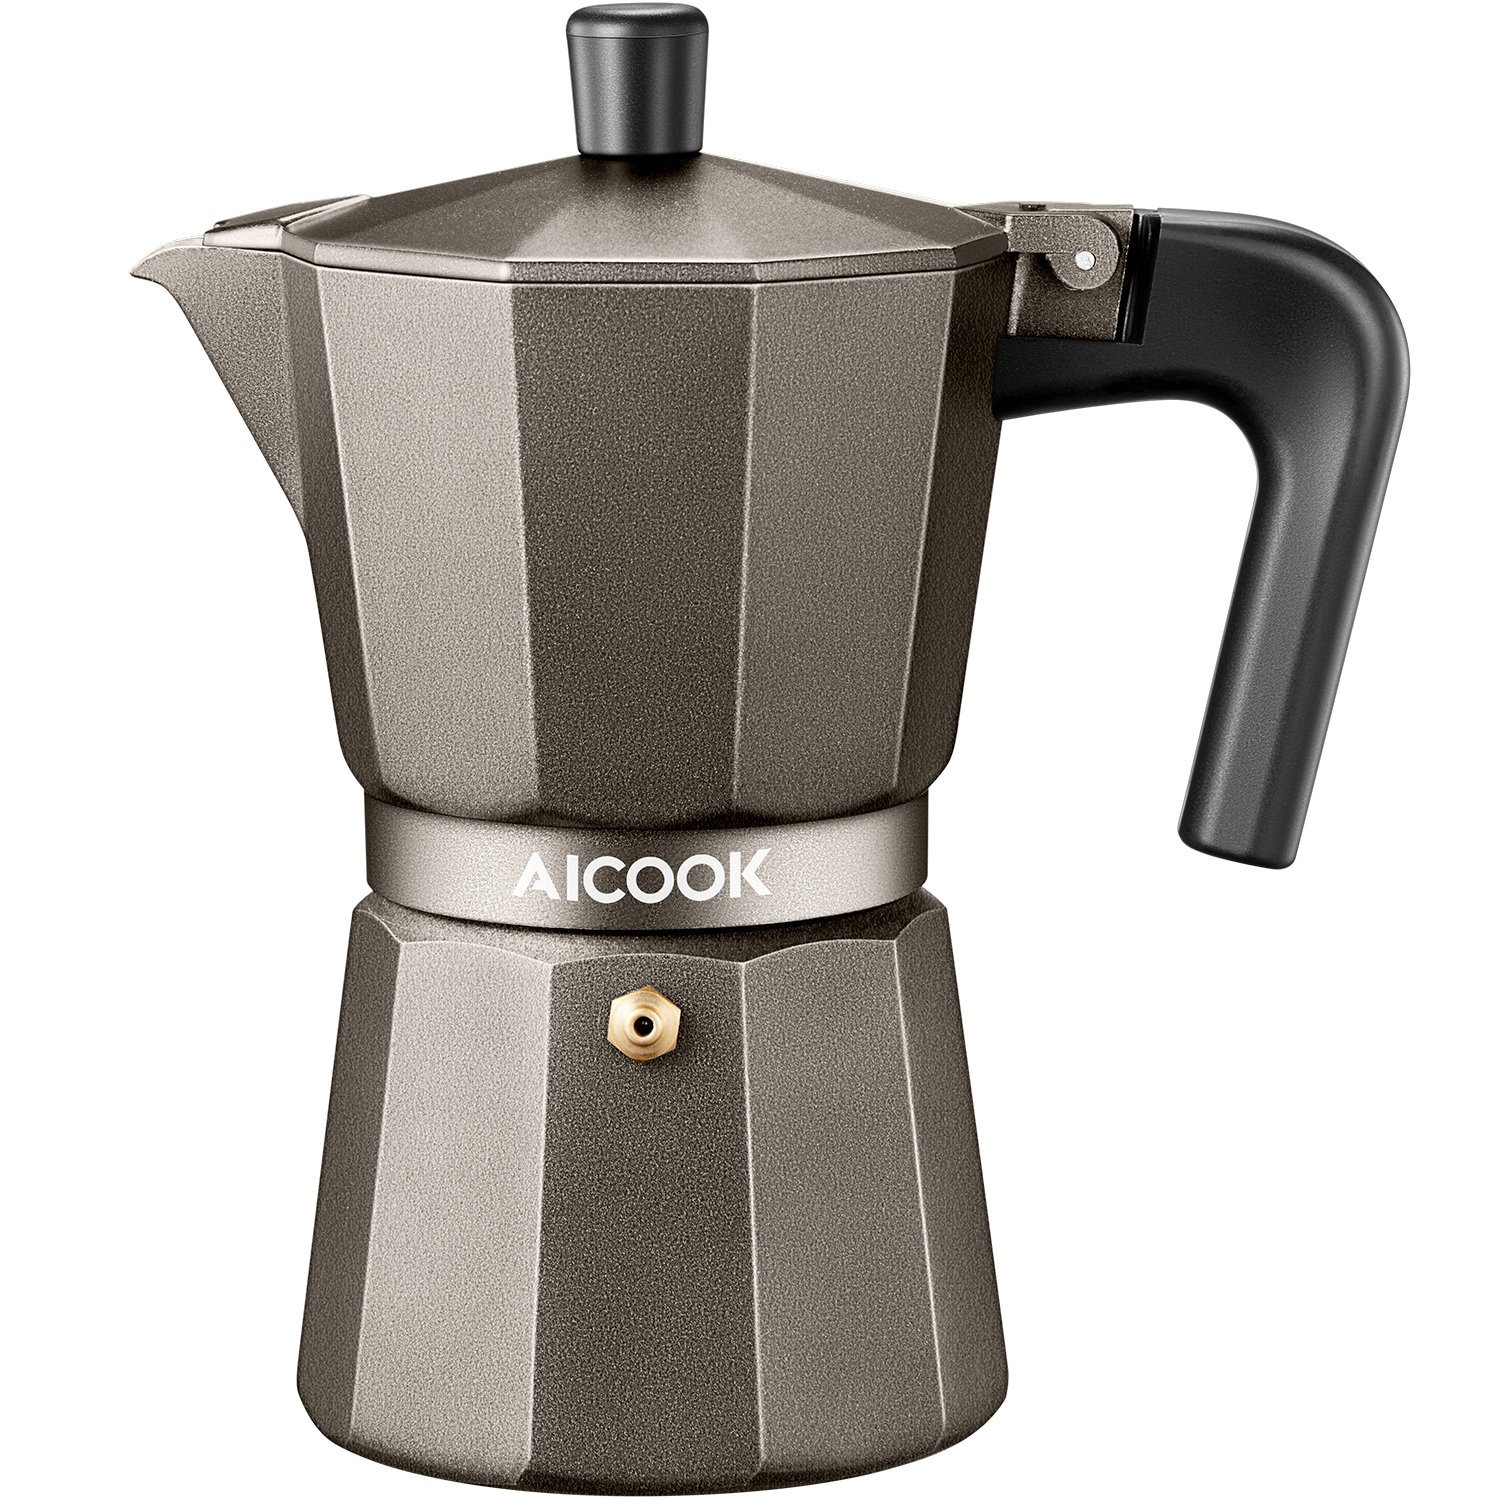 AICOOK Moka Pot, Espresso Maker, Coffee Maker for Gas or Electric Ceramic Stovetop, 6 Cups Espresso Shot Maker for Italian Espresso, Cappuccino and Latte